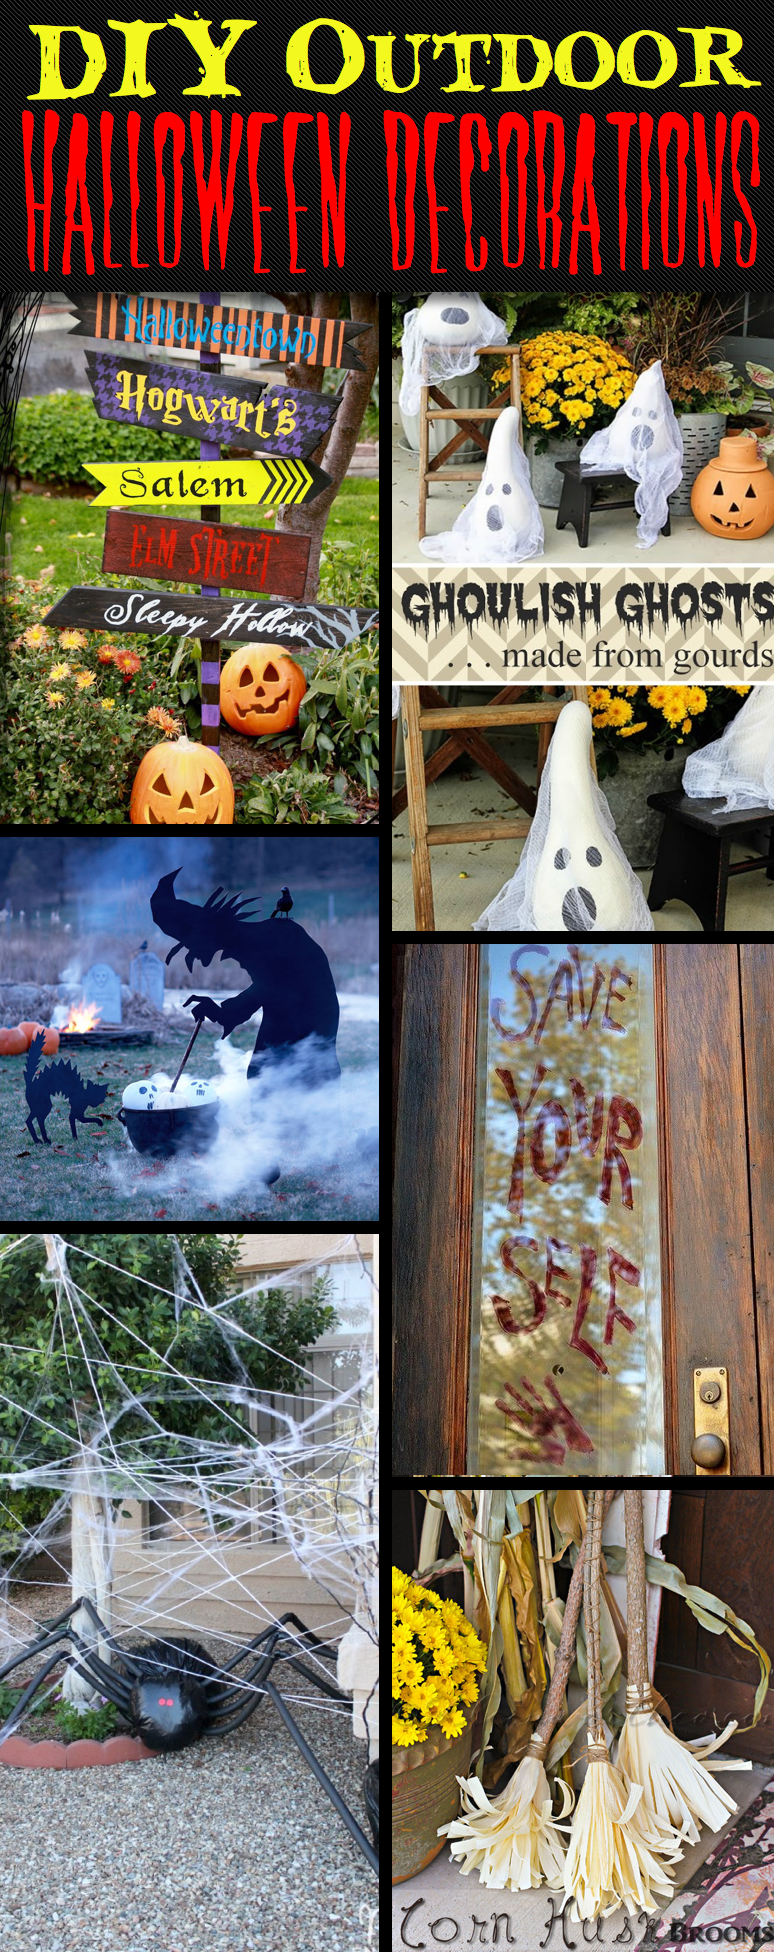 Outdoor halloween decorations 2014 - 30 Astounding But Easy Diy Outdoor Halloween Decoration Ideas